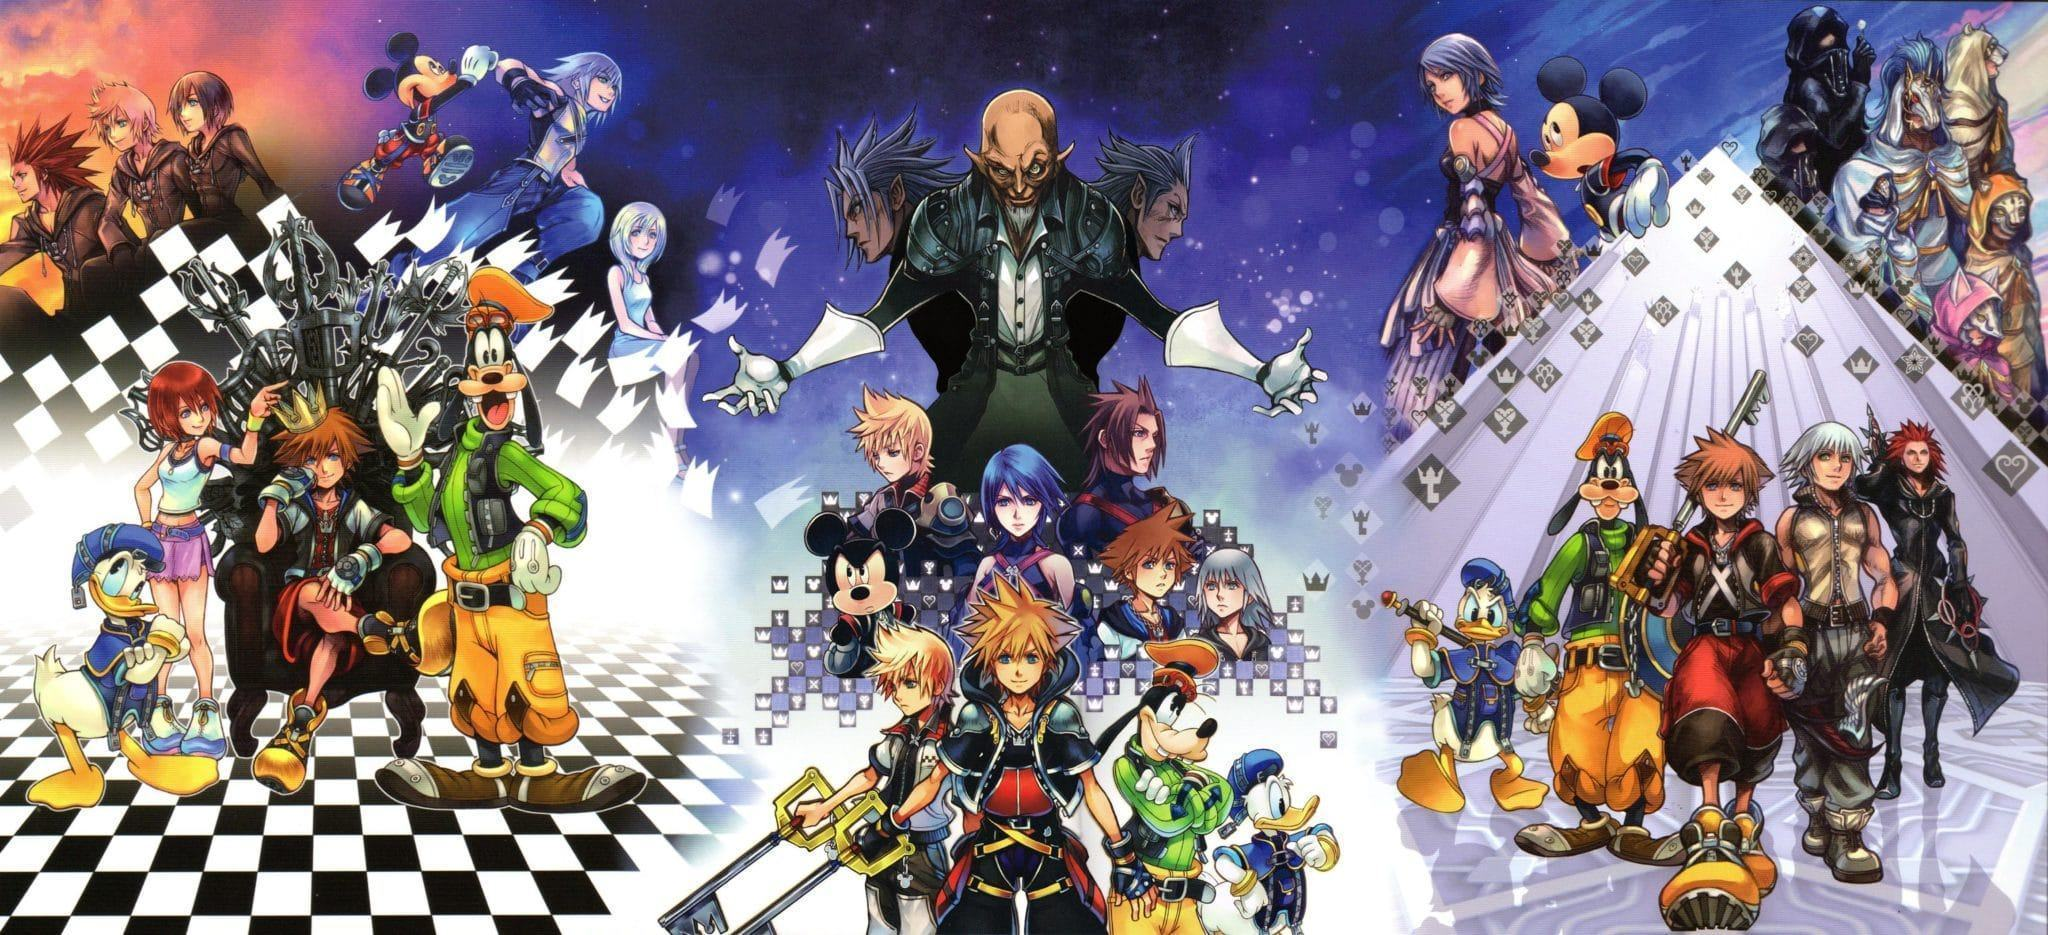 Kingdom hearts 2.8 cover